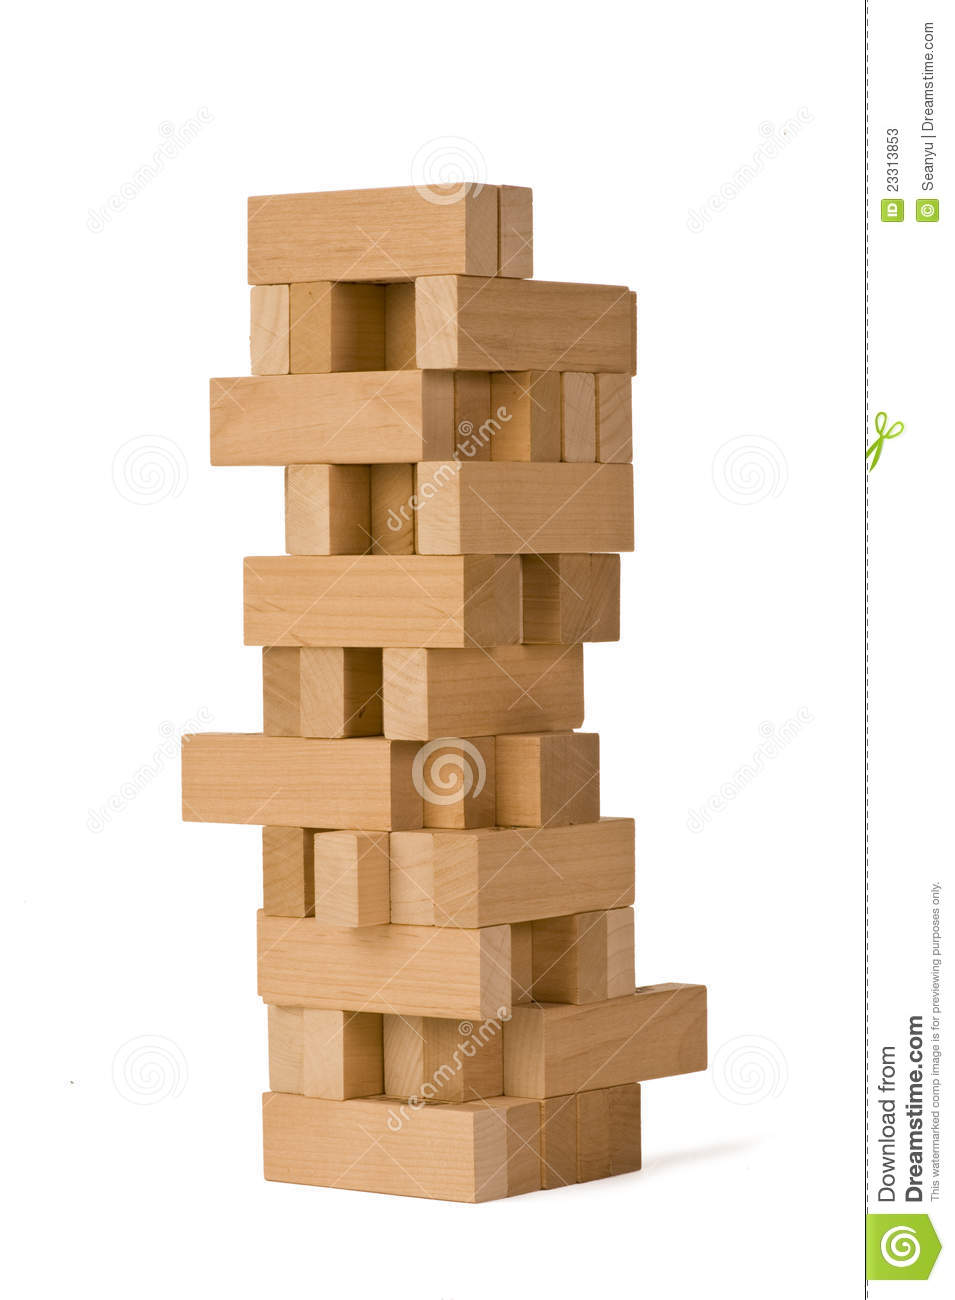 wood-building-blocks-23313853.jpg